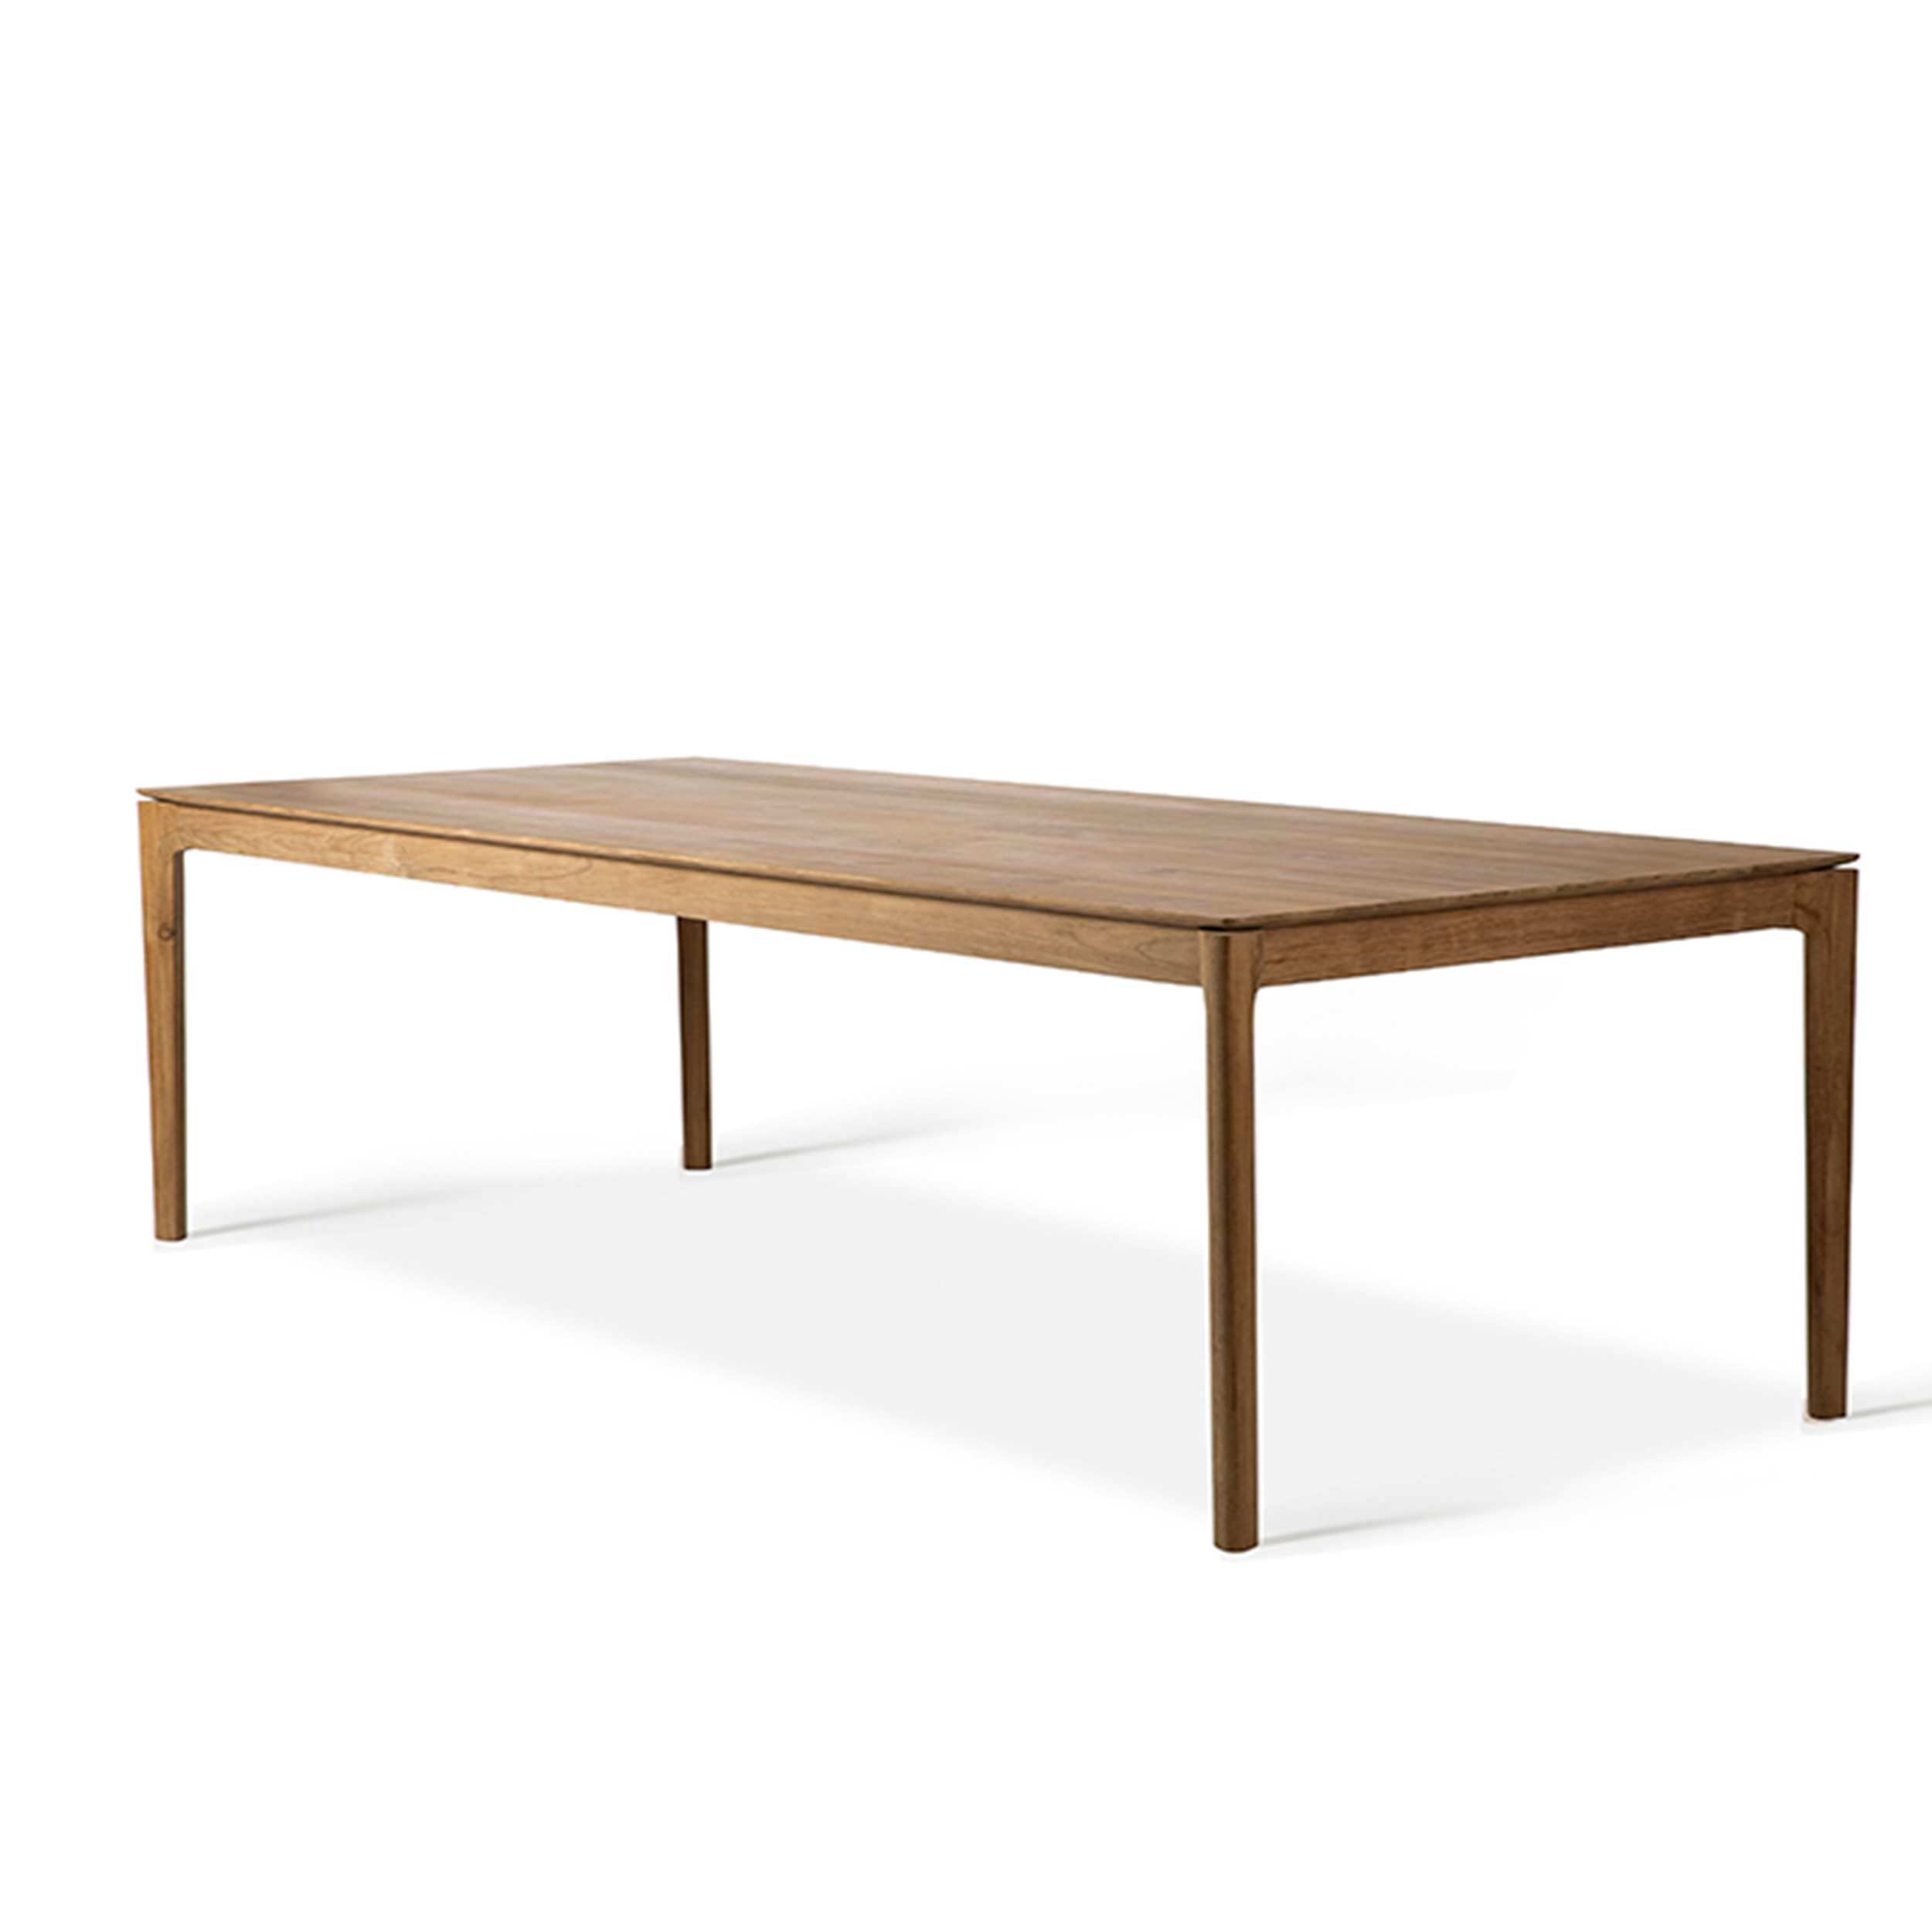 10162 Teak Bok dining table.jpg.png